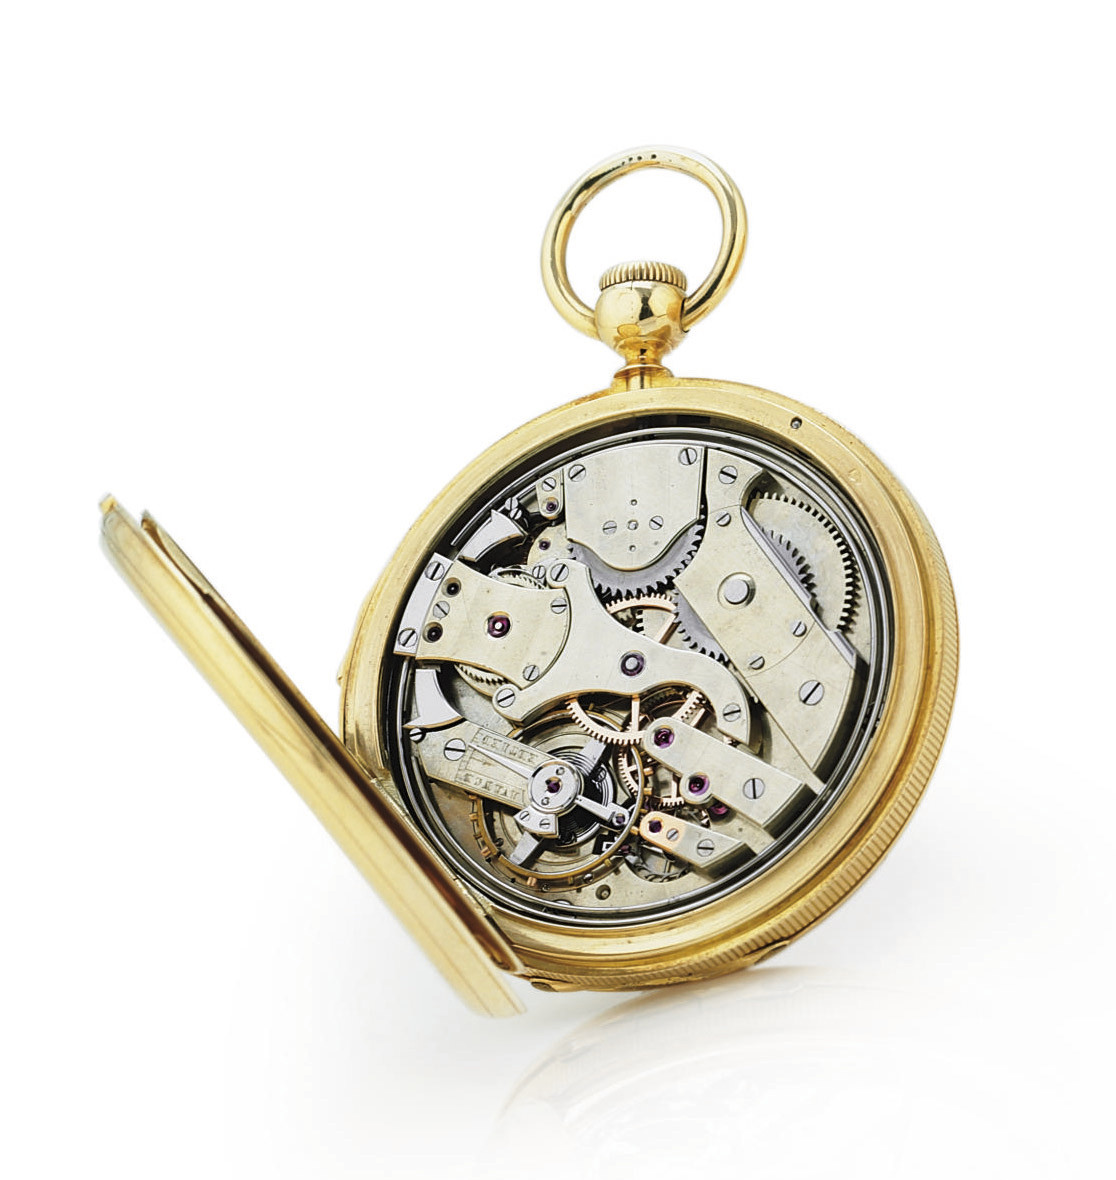 LEROY. AN EARLY 18K GOLD HUNTER CASE QUARTER REPEATING KEYLESS LEVER WATCH